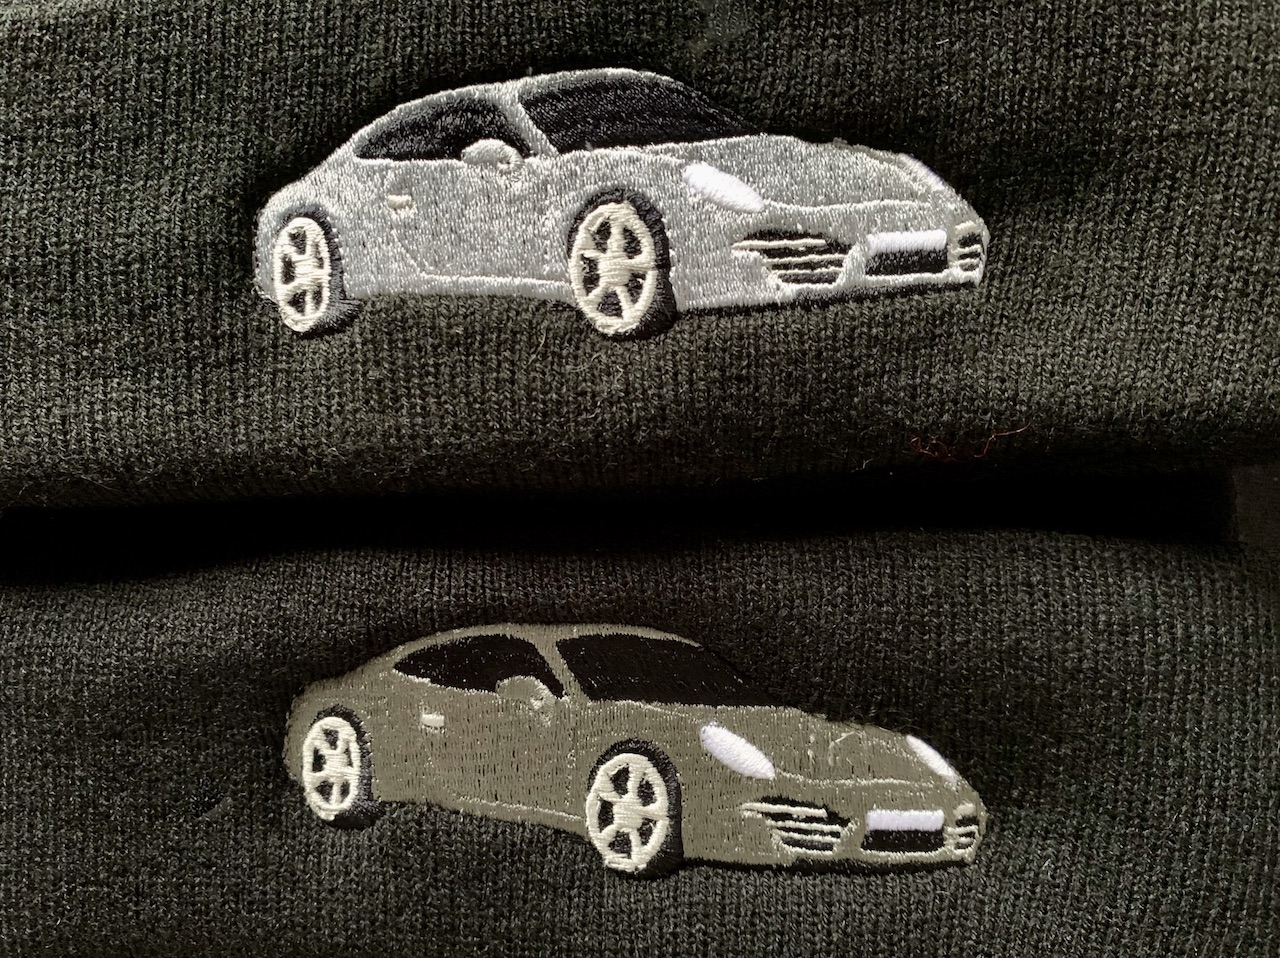 porsche 911 embroidery embroidered clothing jackets hoodies